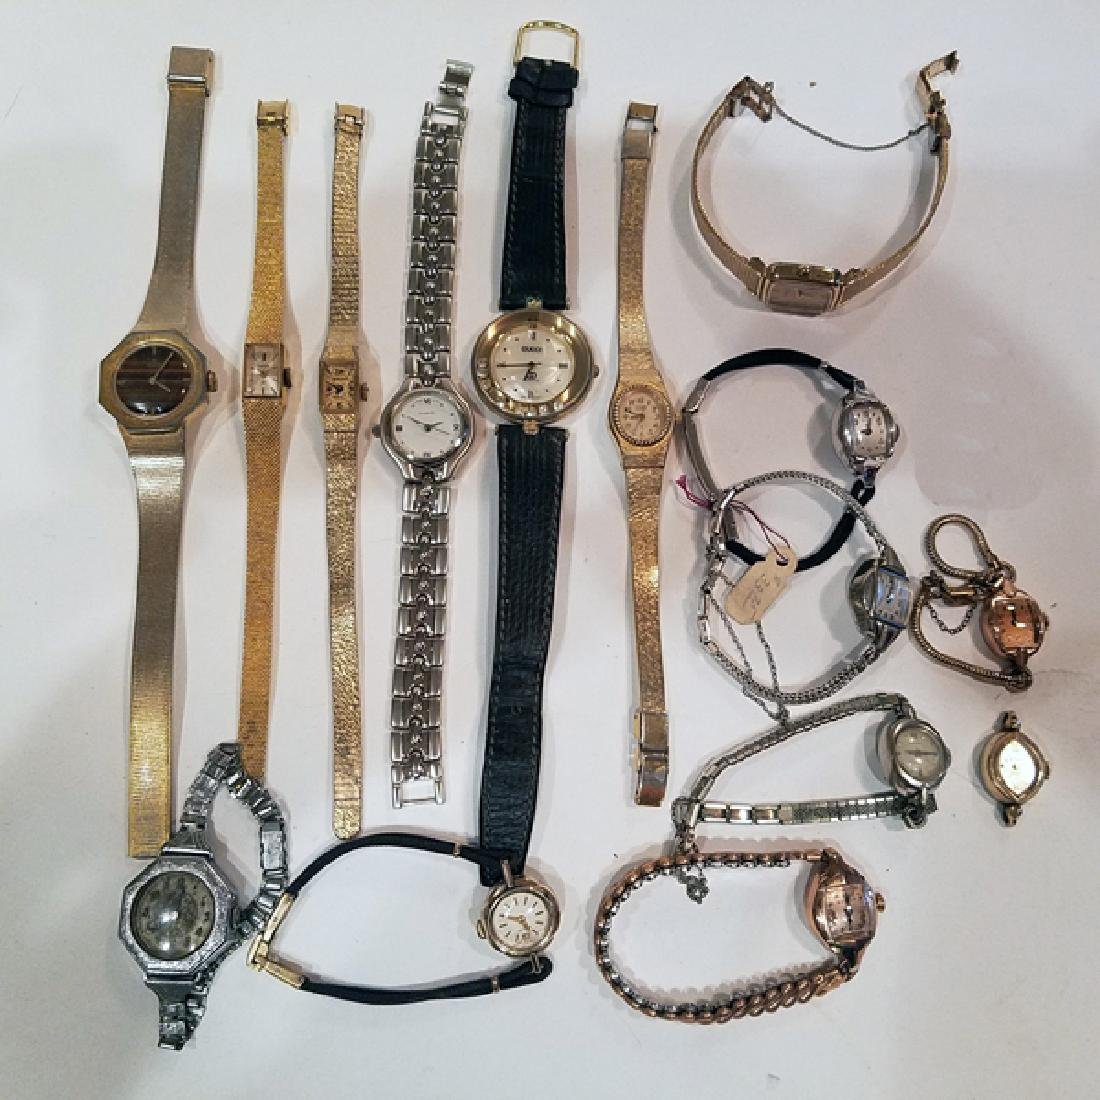 15 Ladies Working and Non-working Watches